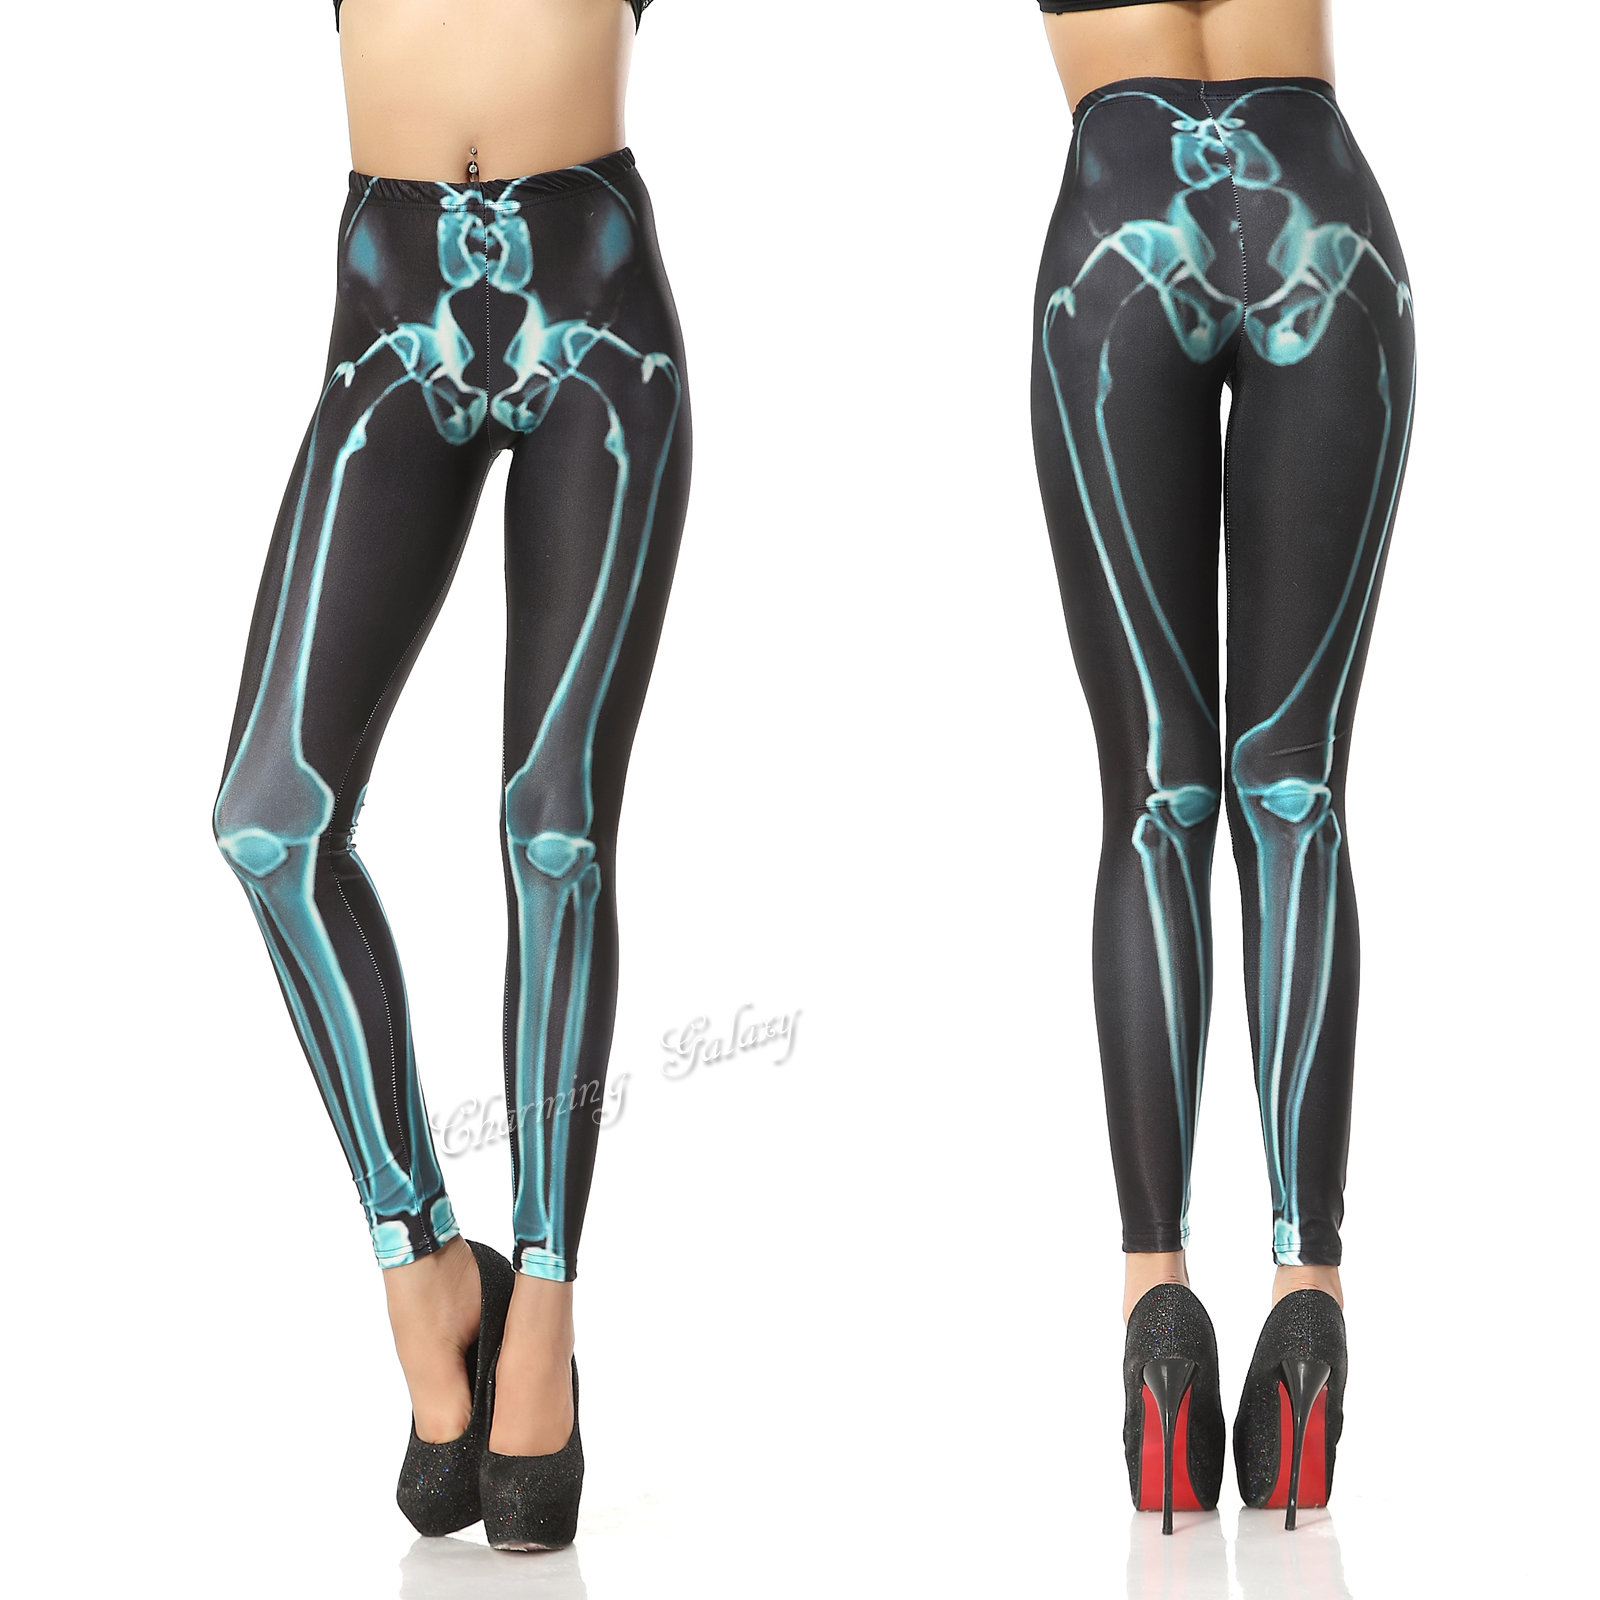 Patterned leggings outfit ideas